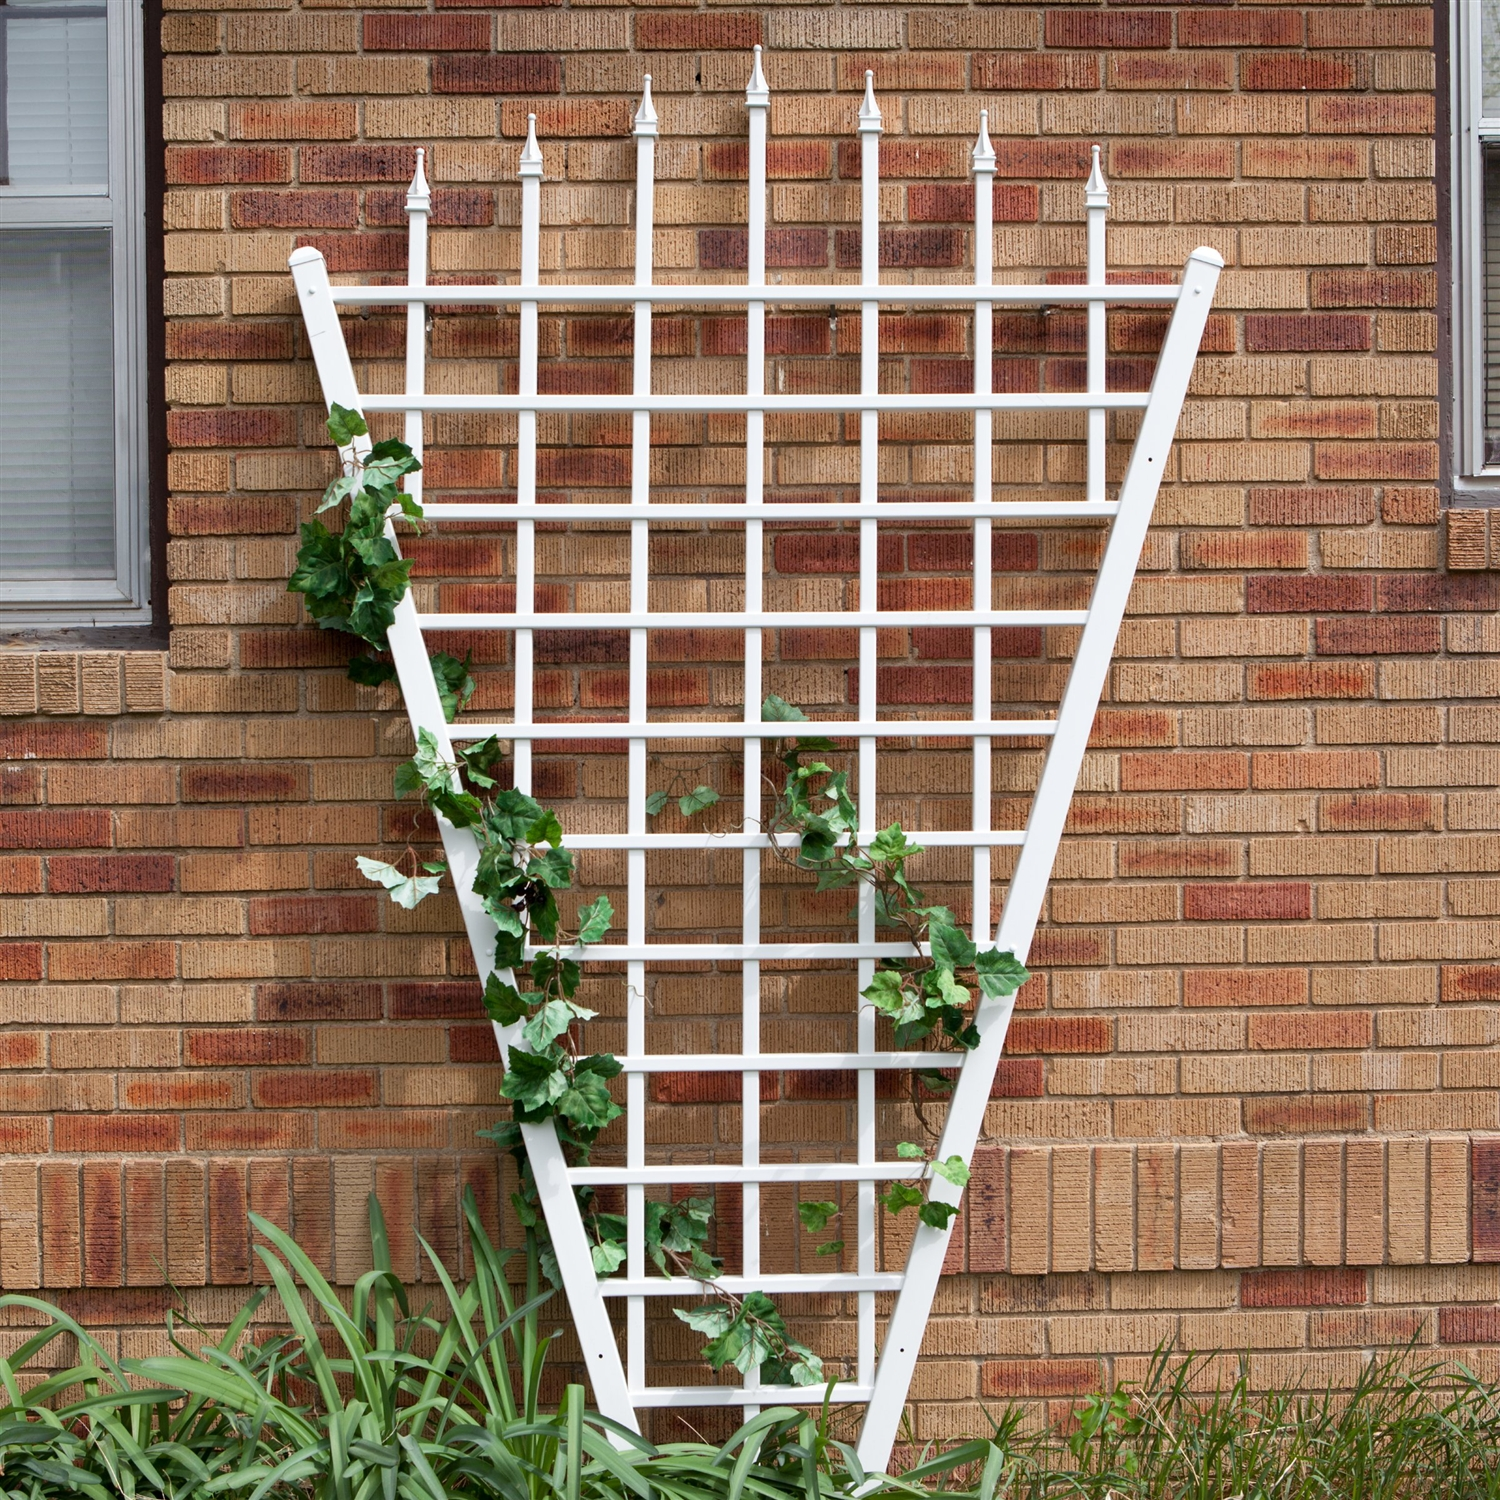 775 ft fan shaped garden trellis with pointed finals in white vinyl - Garden Trellises